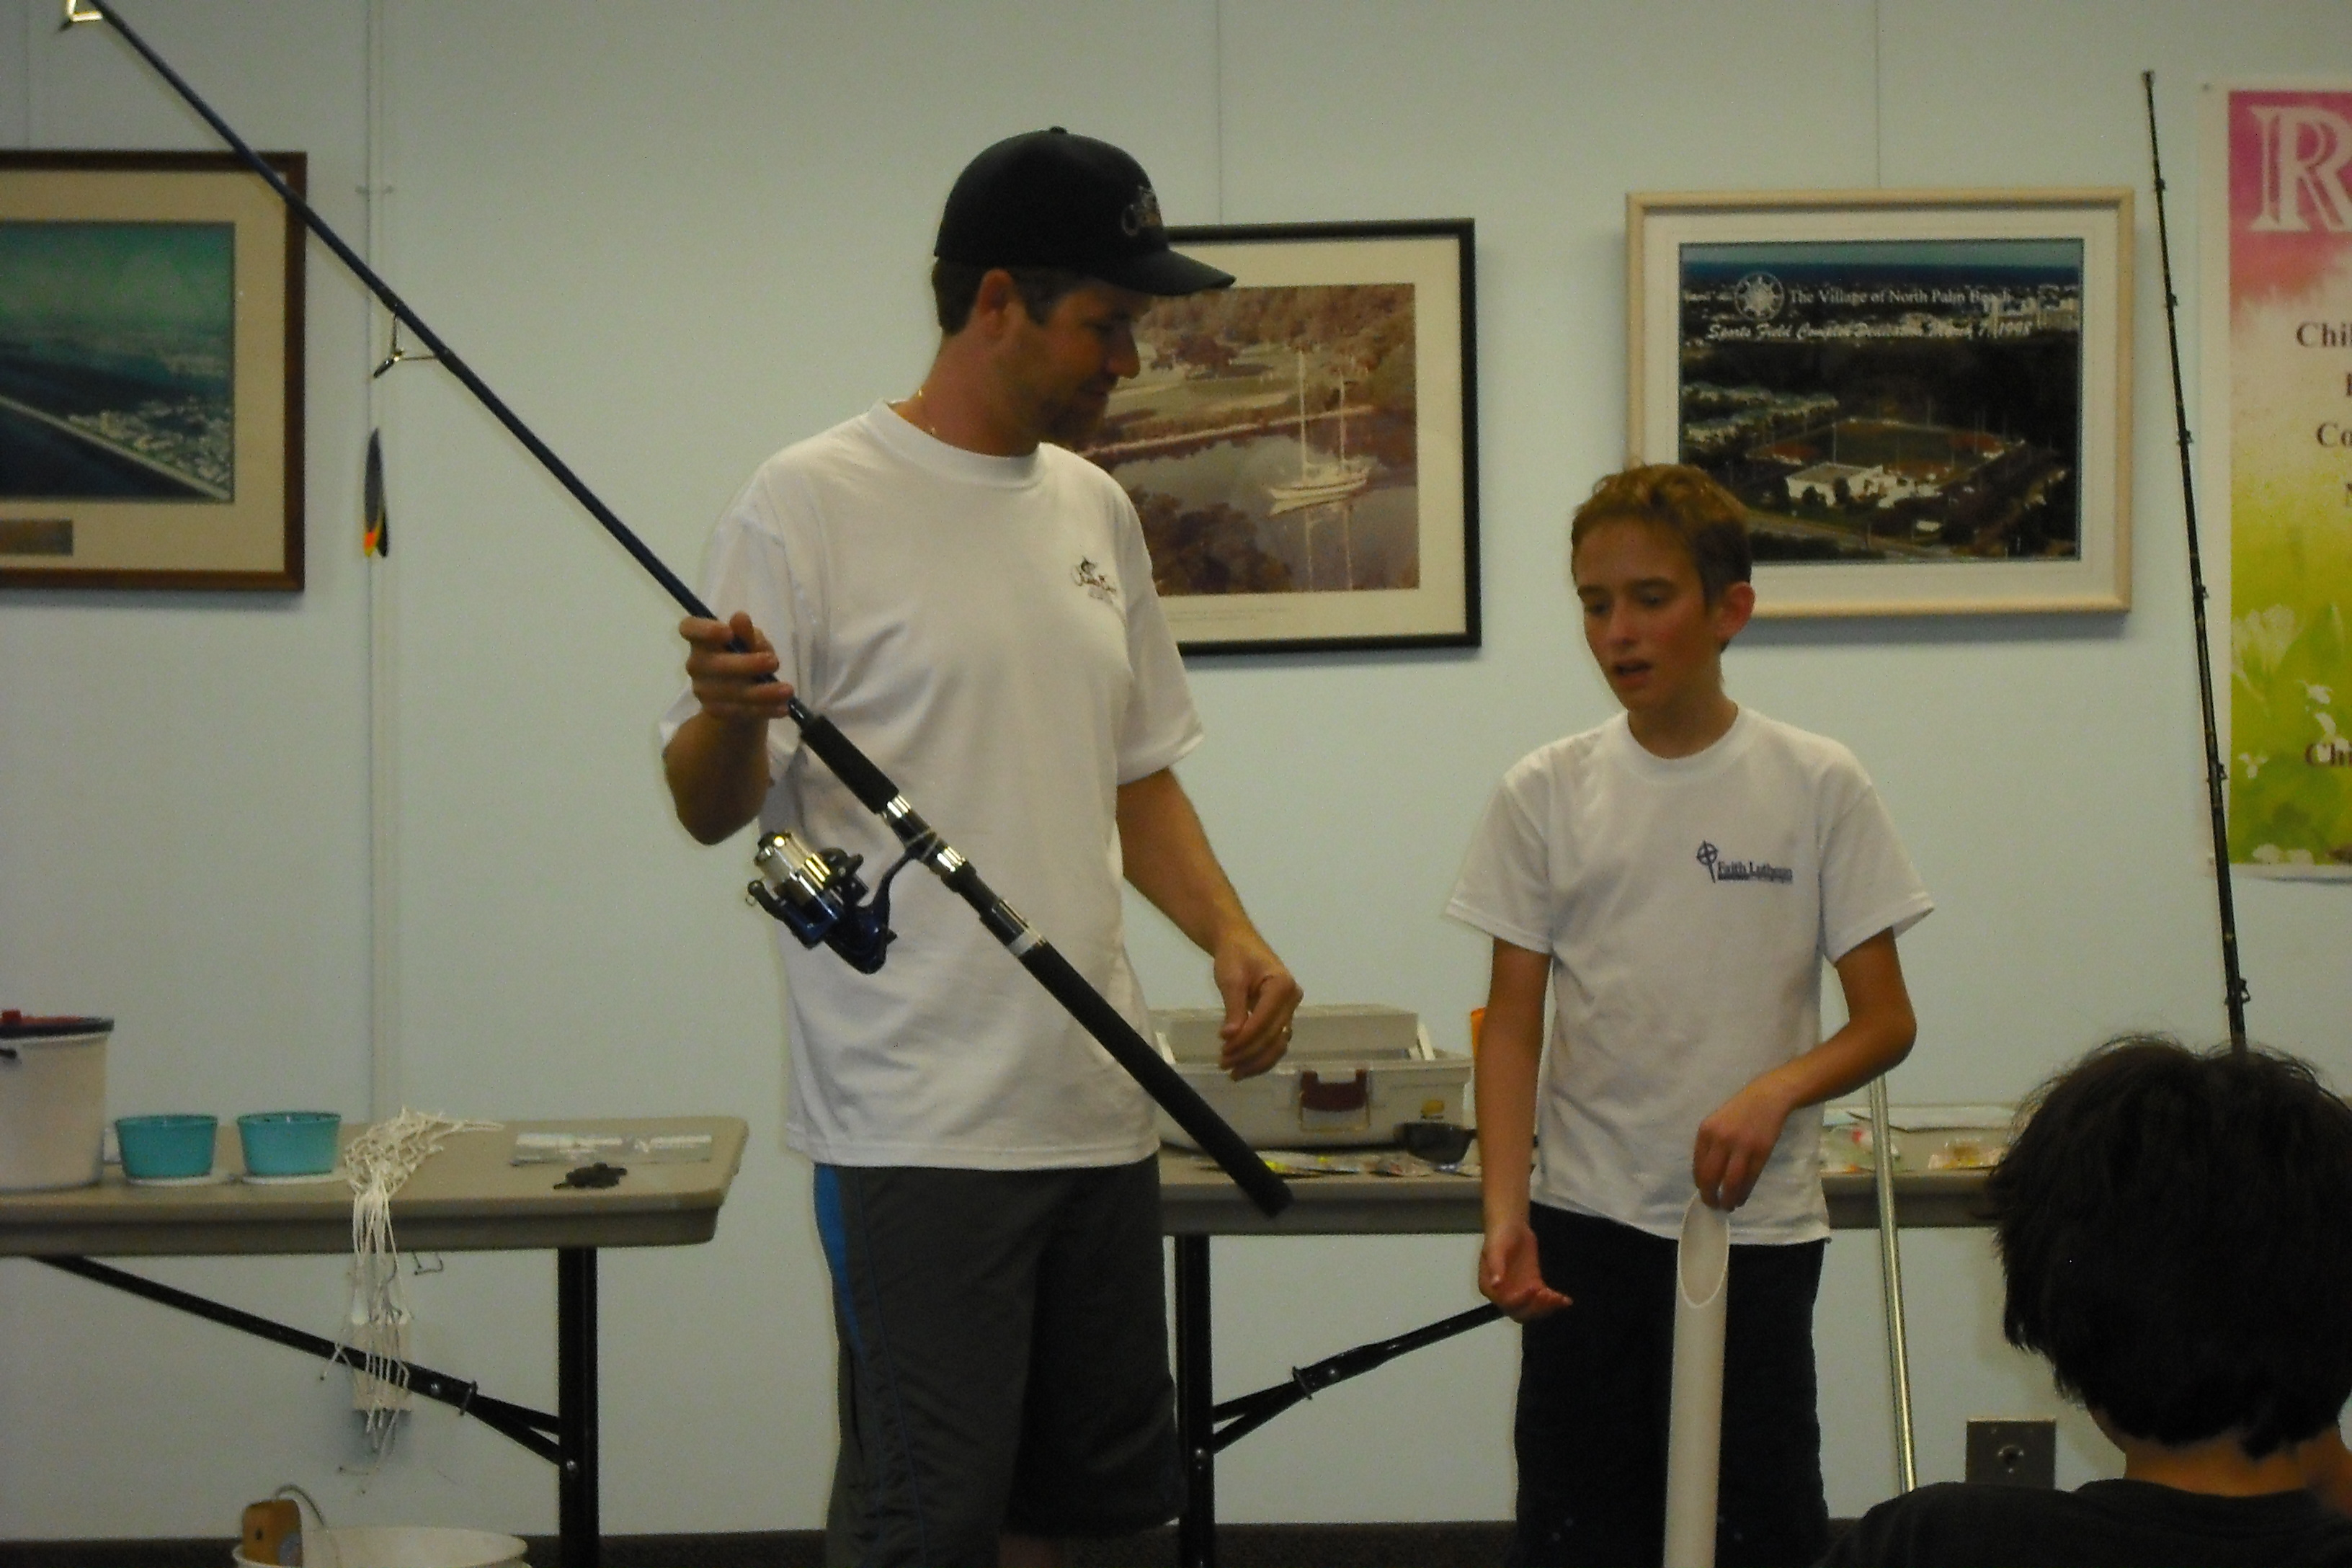 A boy is brought up to look at another fishing pole